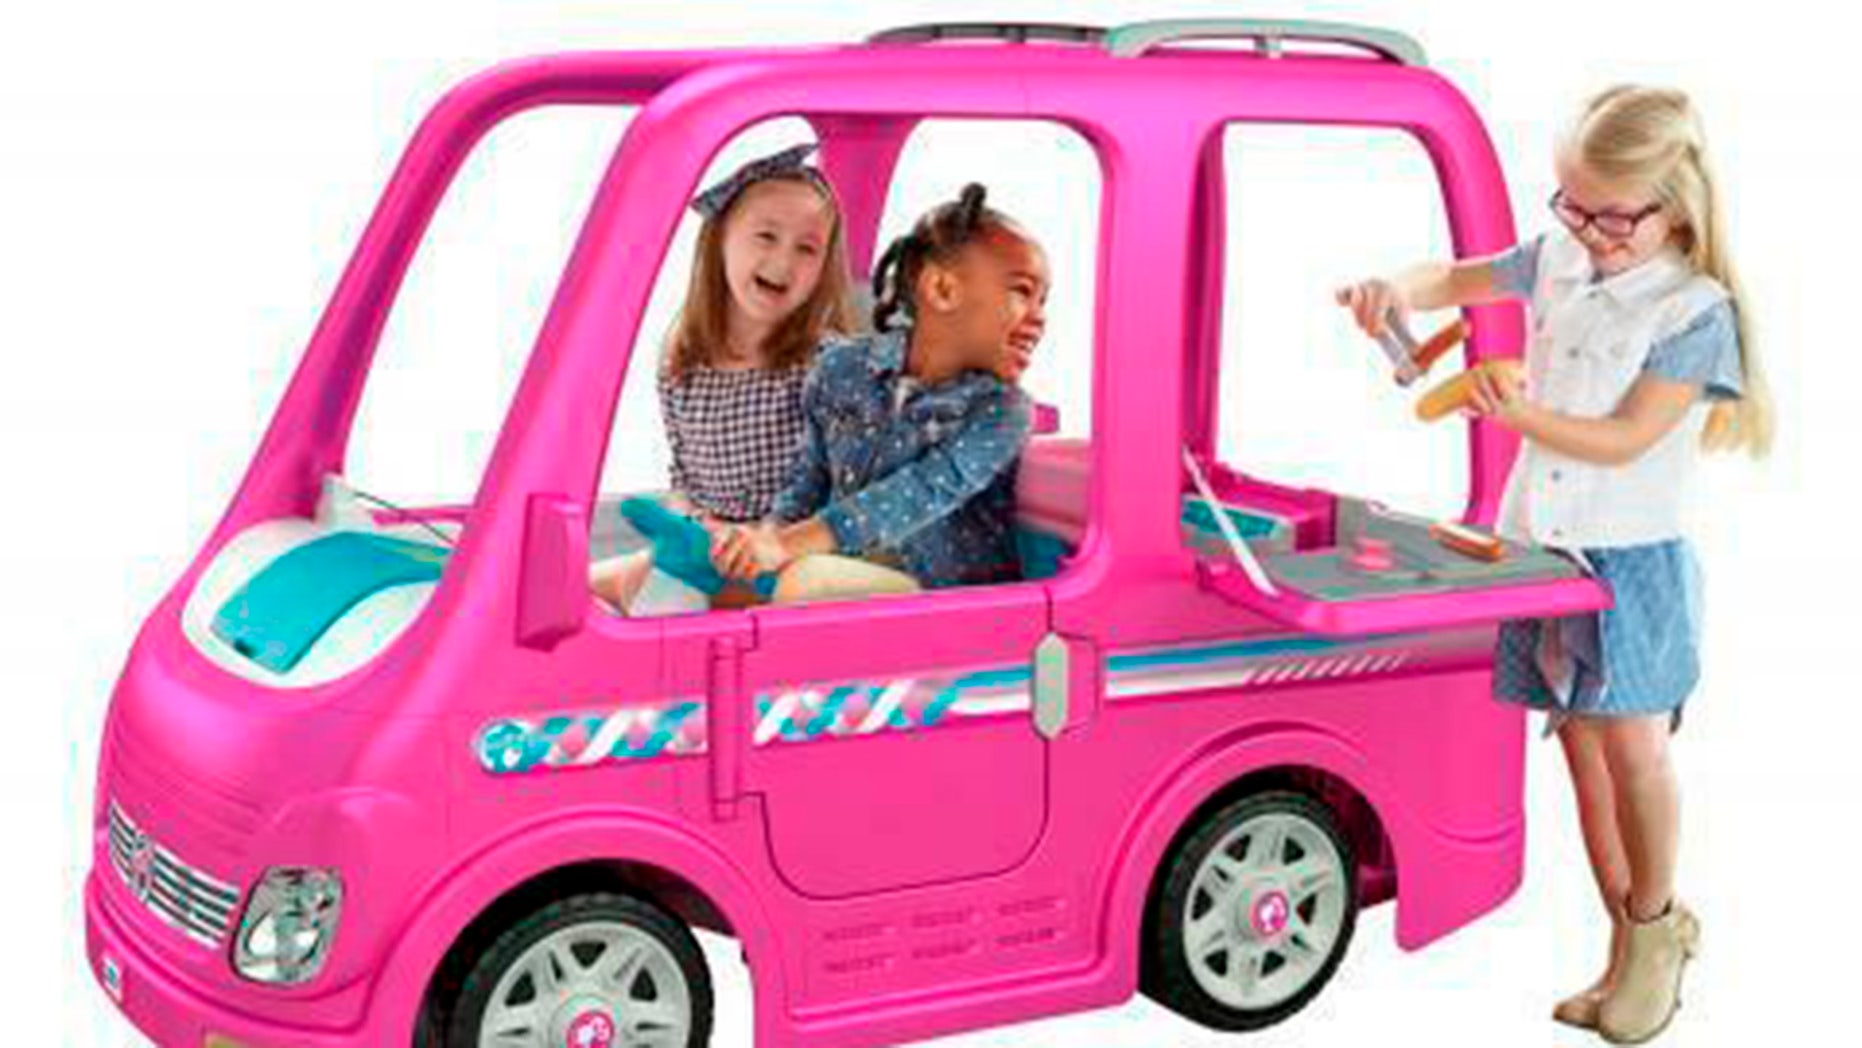 Fisher Price is voluntarily recalling about 44,000 Children's Power Wheels Barbie Dream Campers because they can keep running after the foot pedal is released. The model FRC29 battery-operated vehicles are hot pink with blue accents and have the Barbie logo printed on the back.